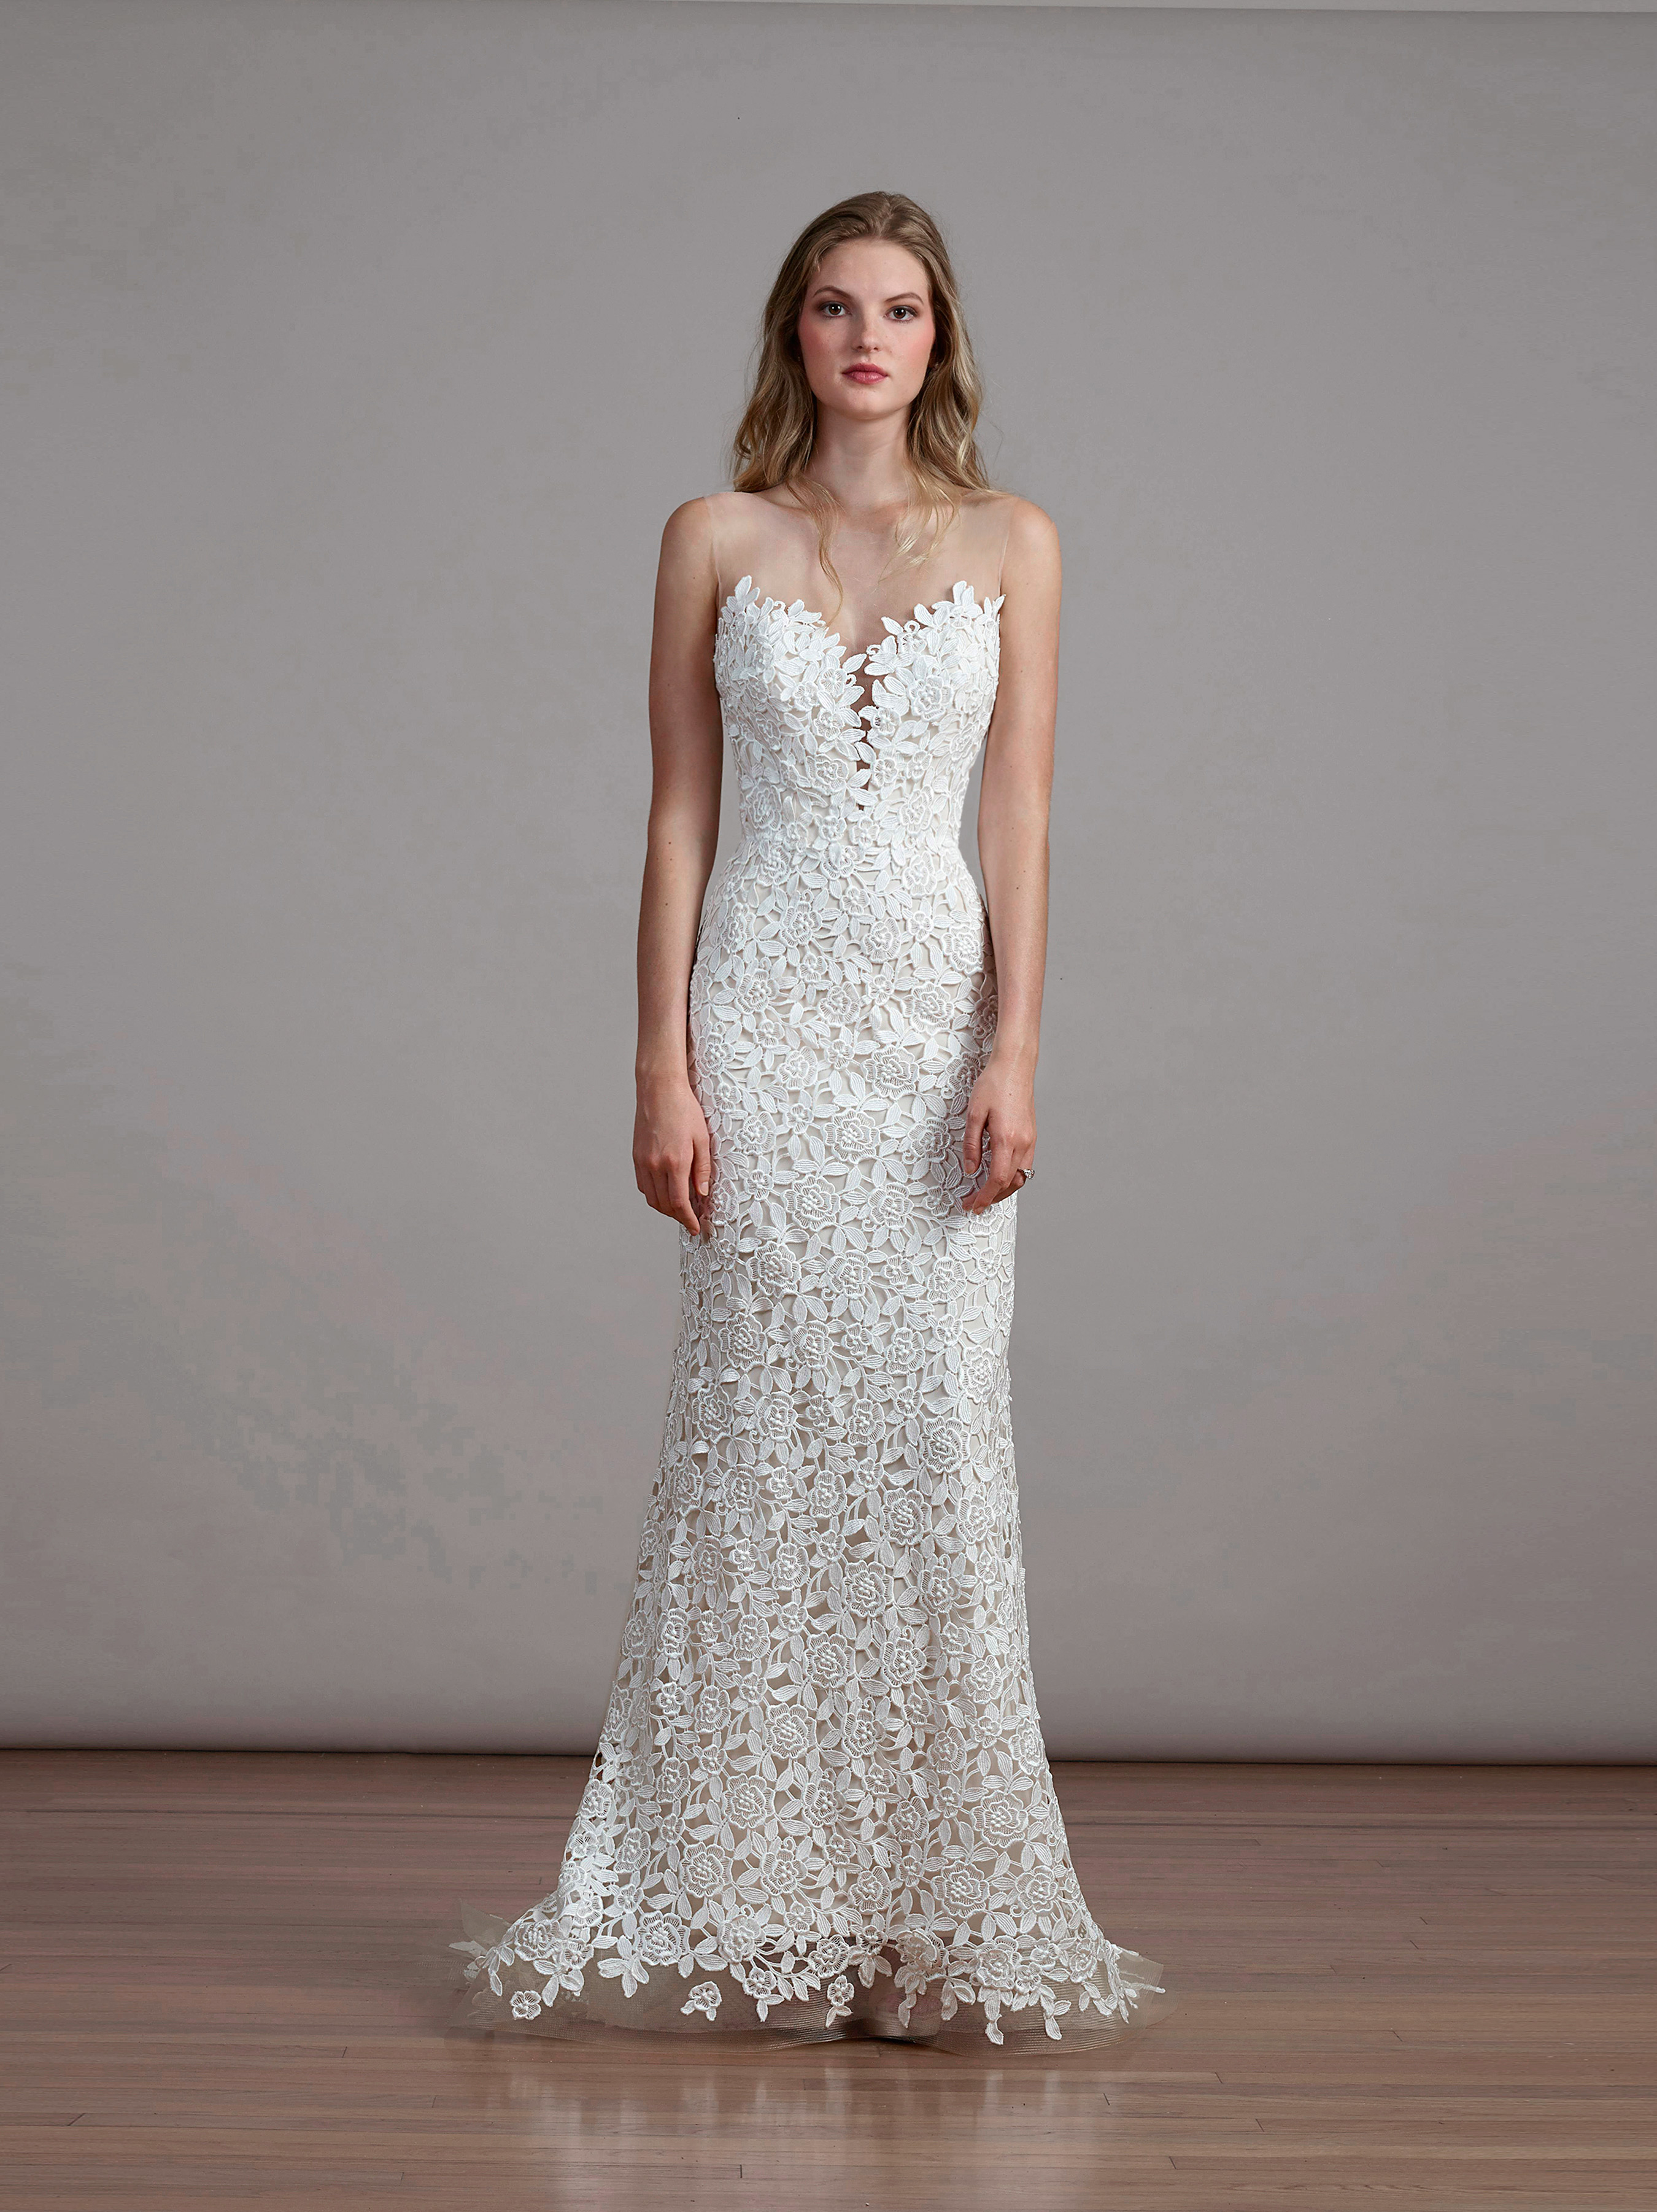 Liancarlo wedding dress with illusion neckline